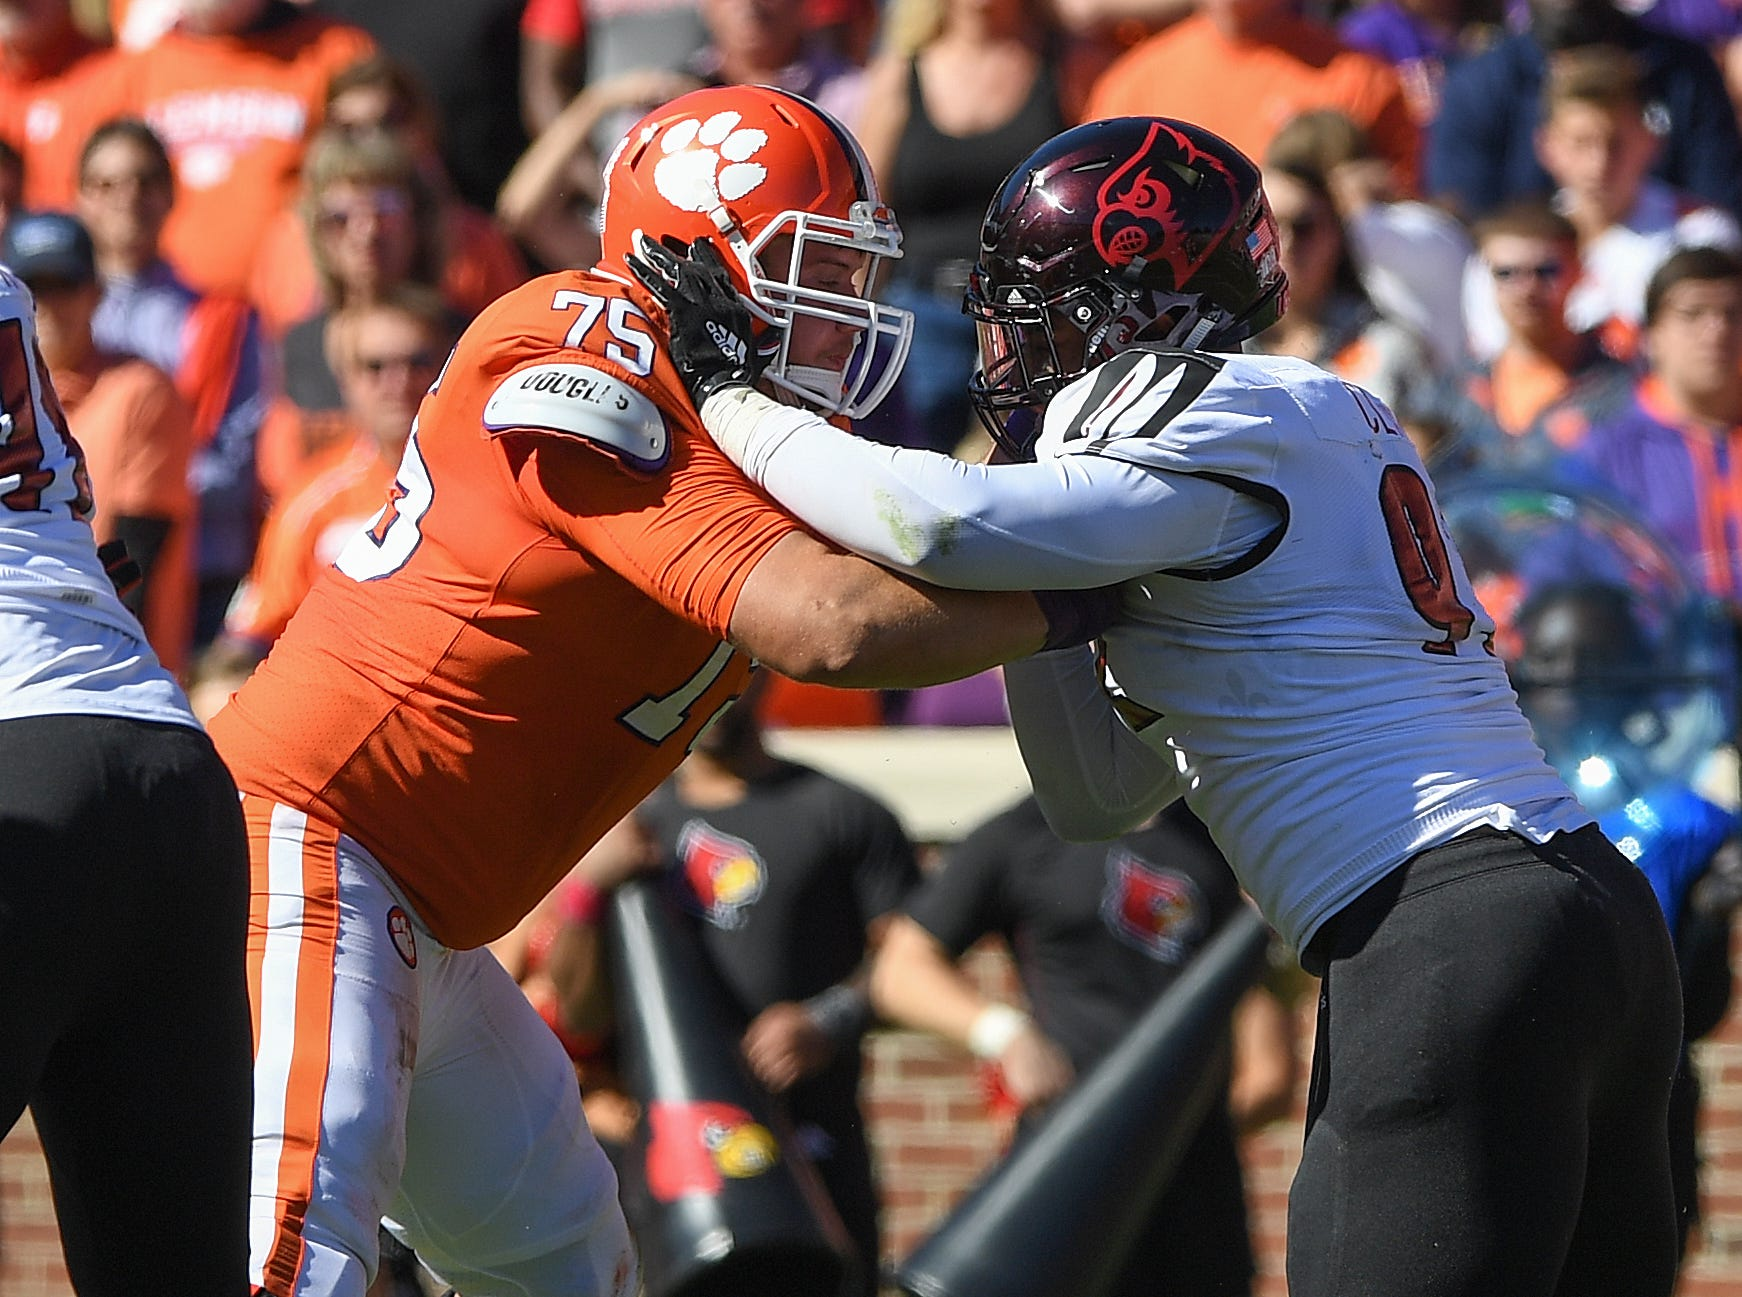 Clemson offensive lineman Mitch Hyatt (75) blocks Louisville defensive end Malik Clark (92) on a play that broke the record for most offensive plays by a Clemson player in a carrier during the 2nd quarter Saturday, November 3, 2018 at Clemson's Memorial Stadium.